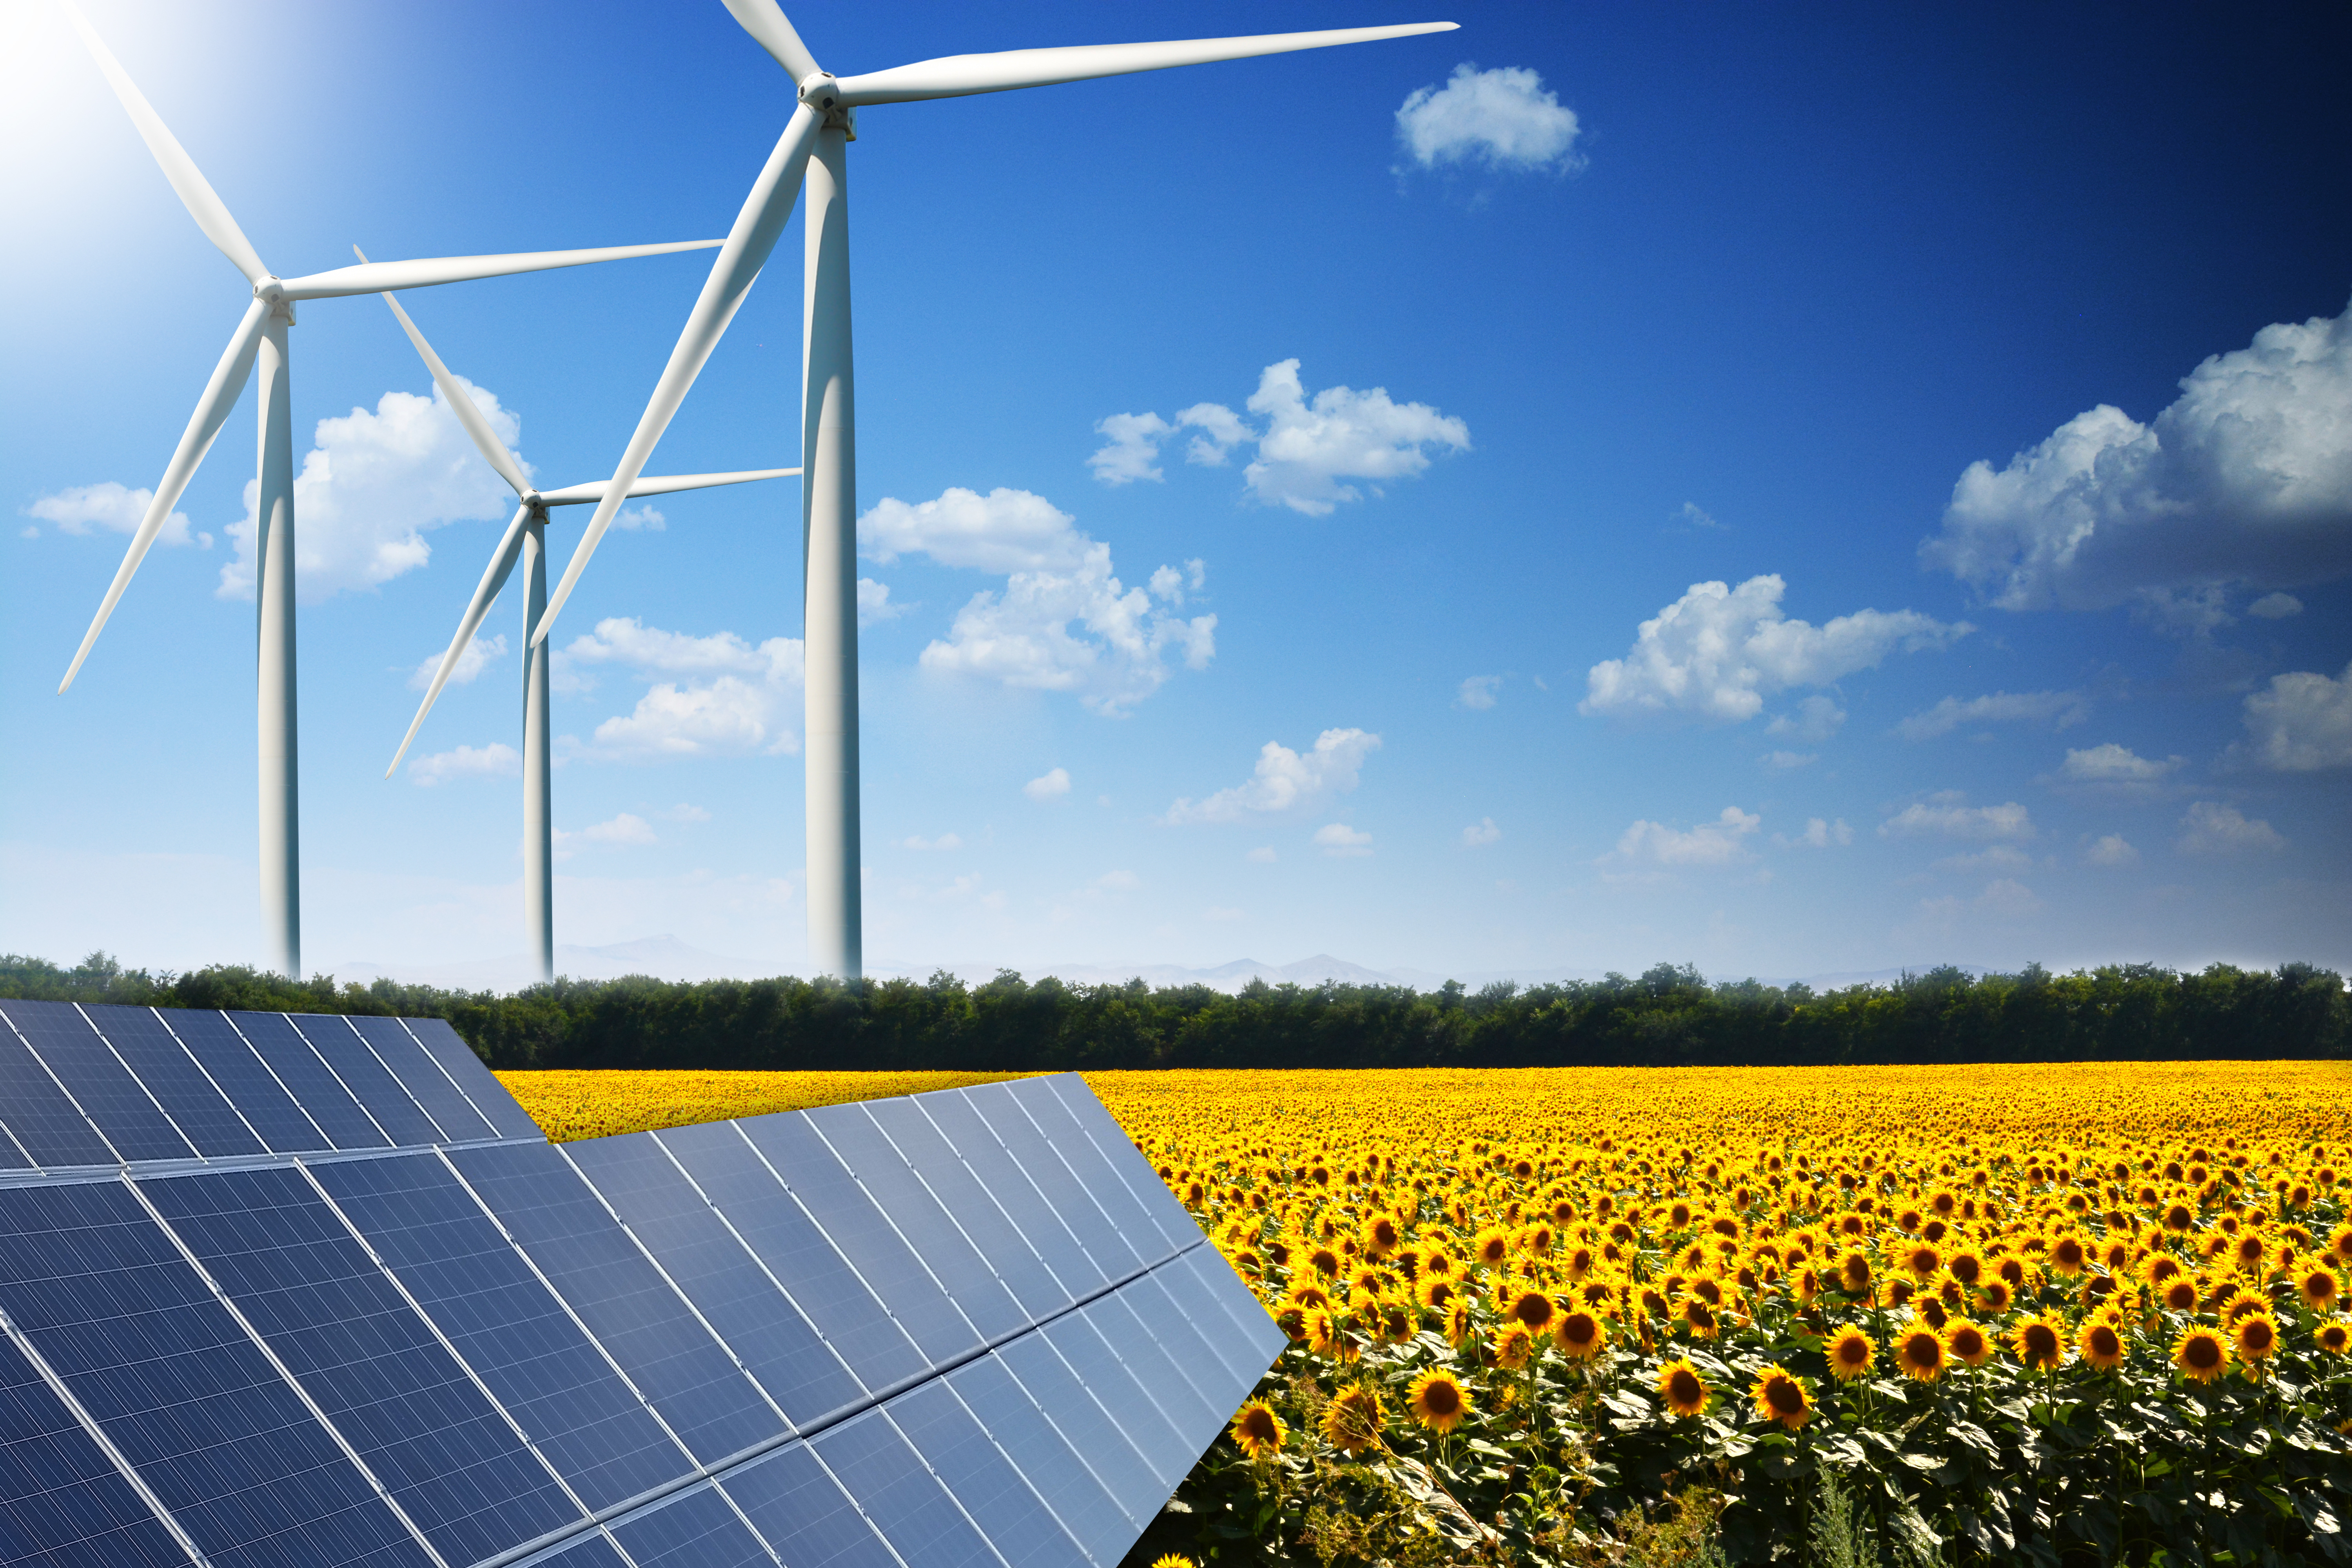 Solar, wind and sunflowers